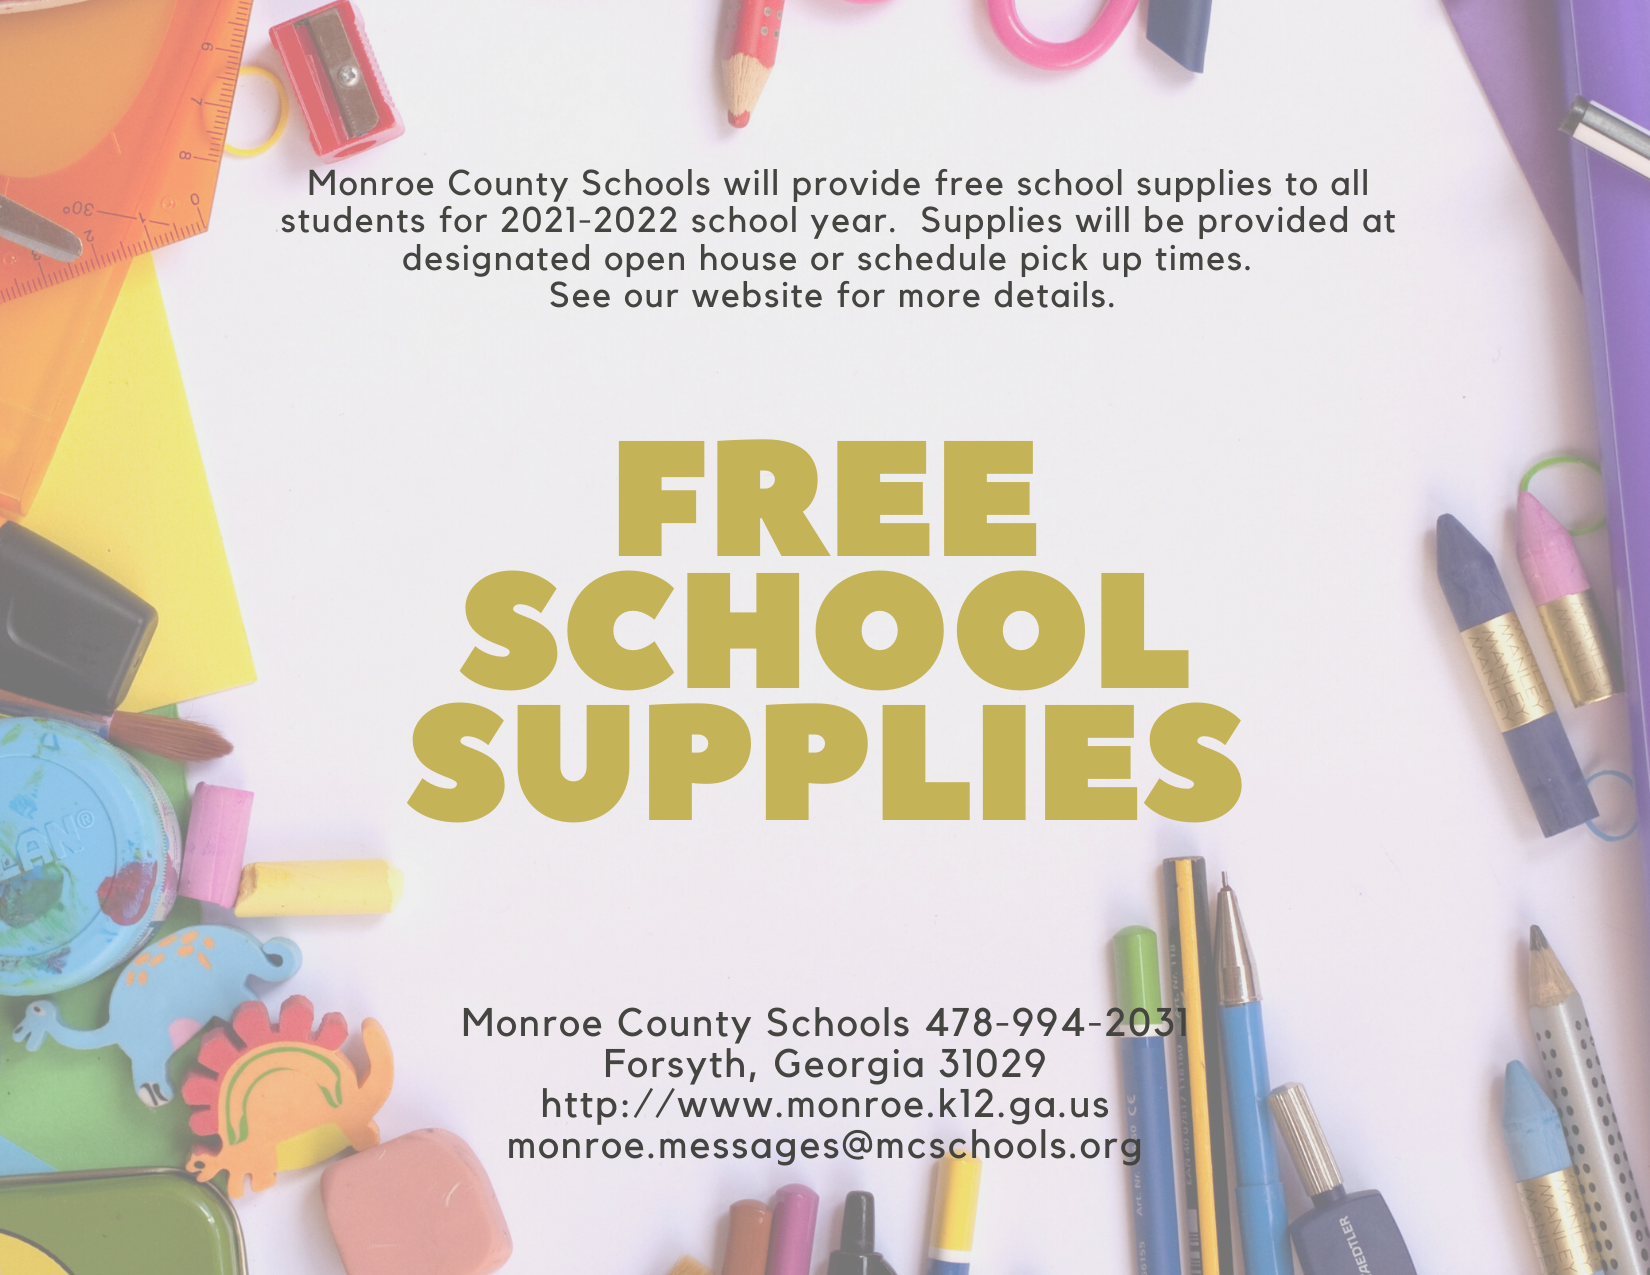 FREE School Supplies for All Students